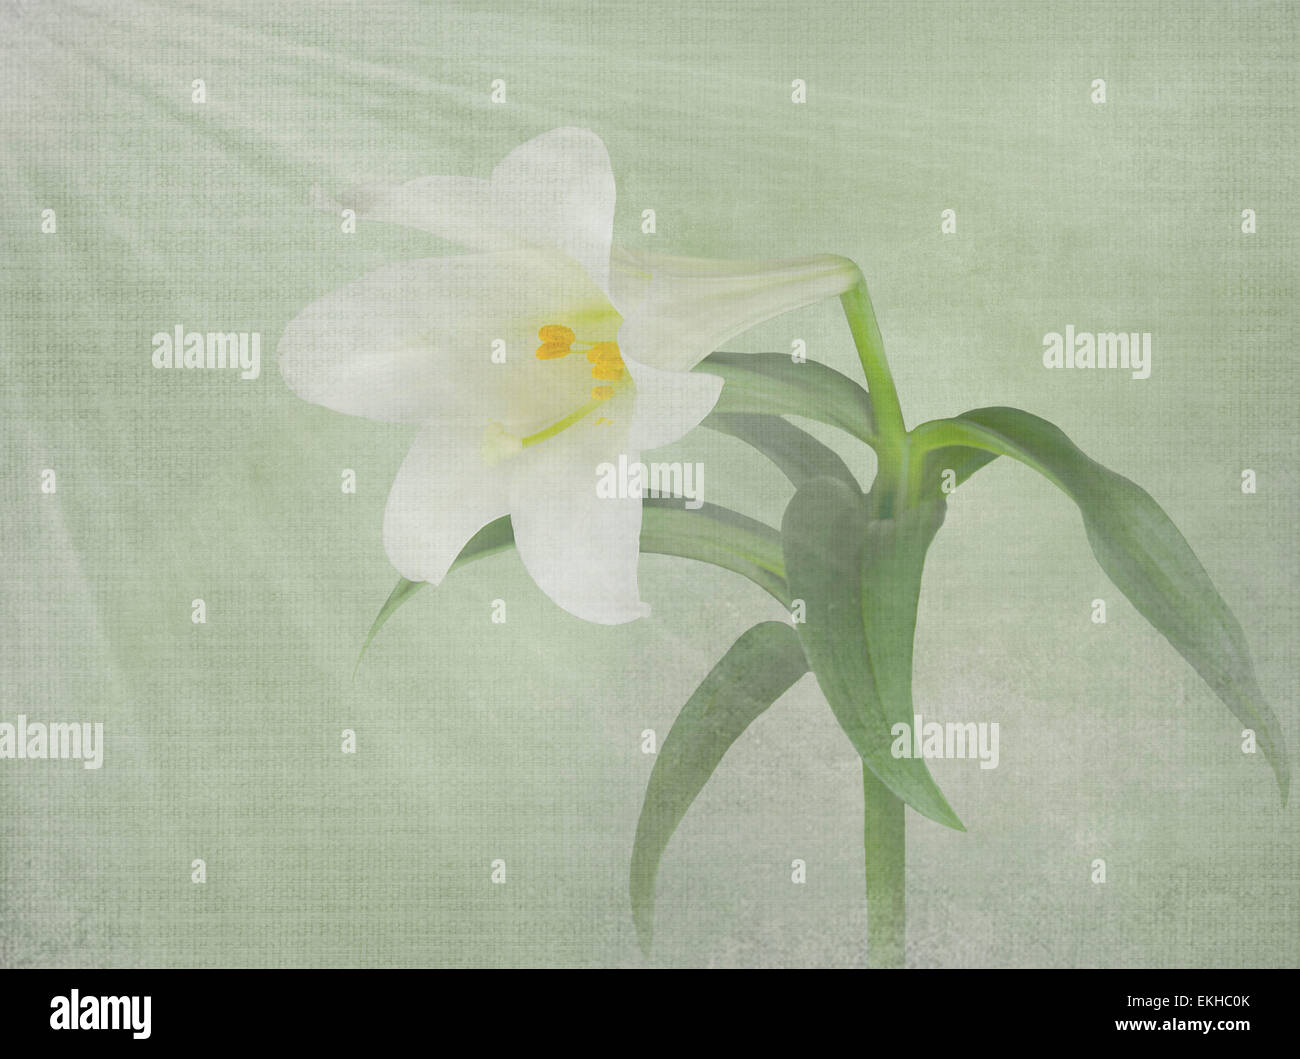 Easter lily bloom with light rays and texture overlay. - Stock Image